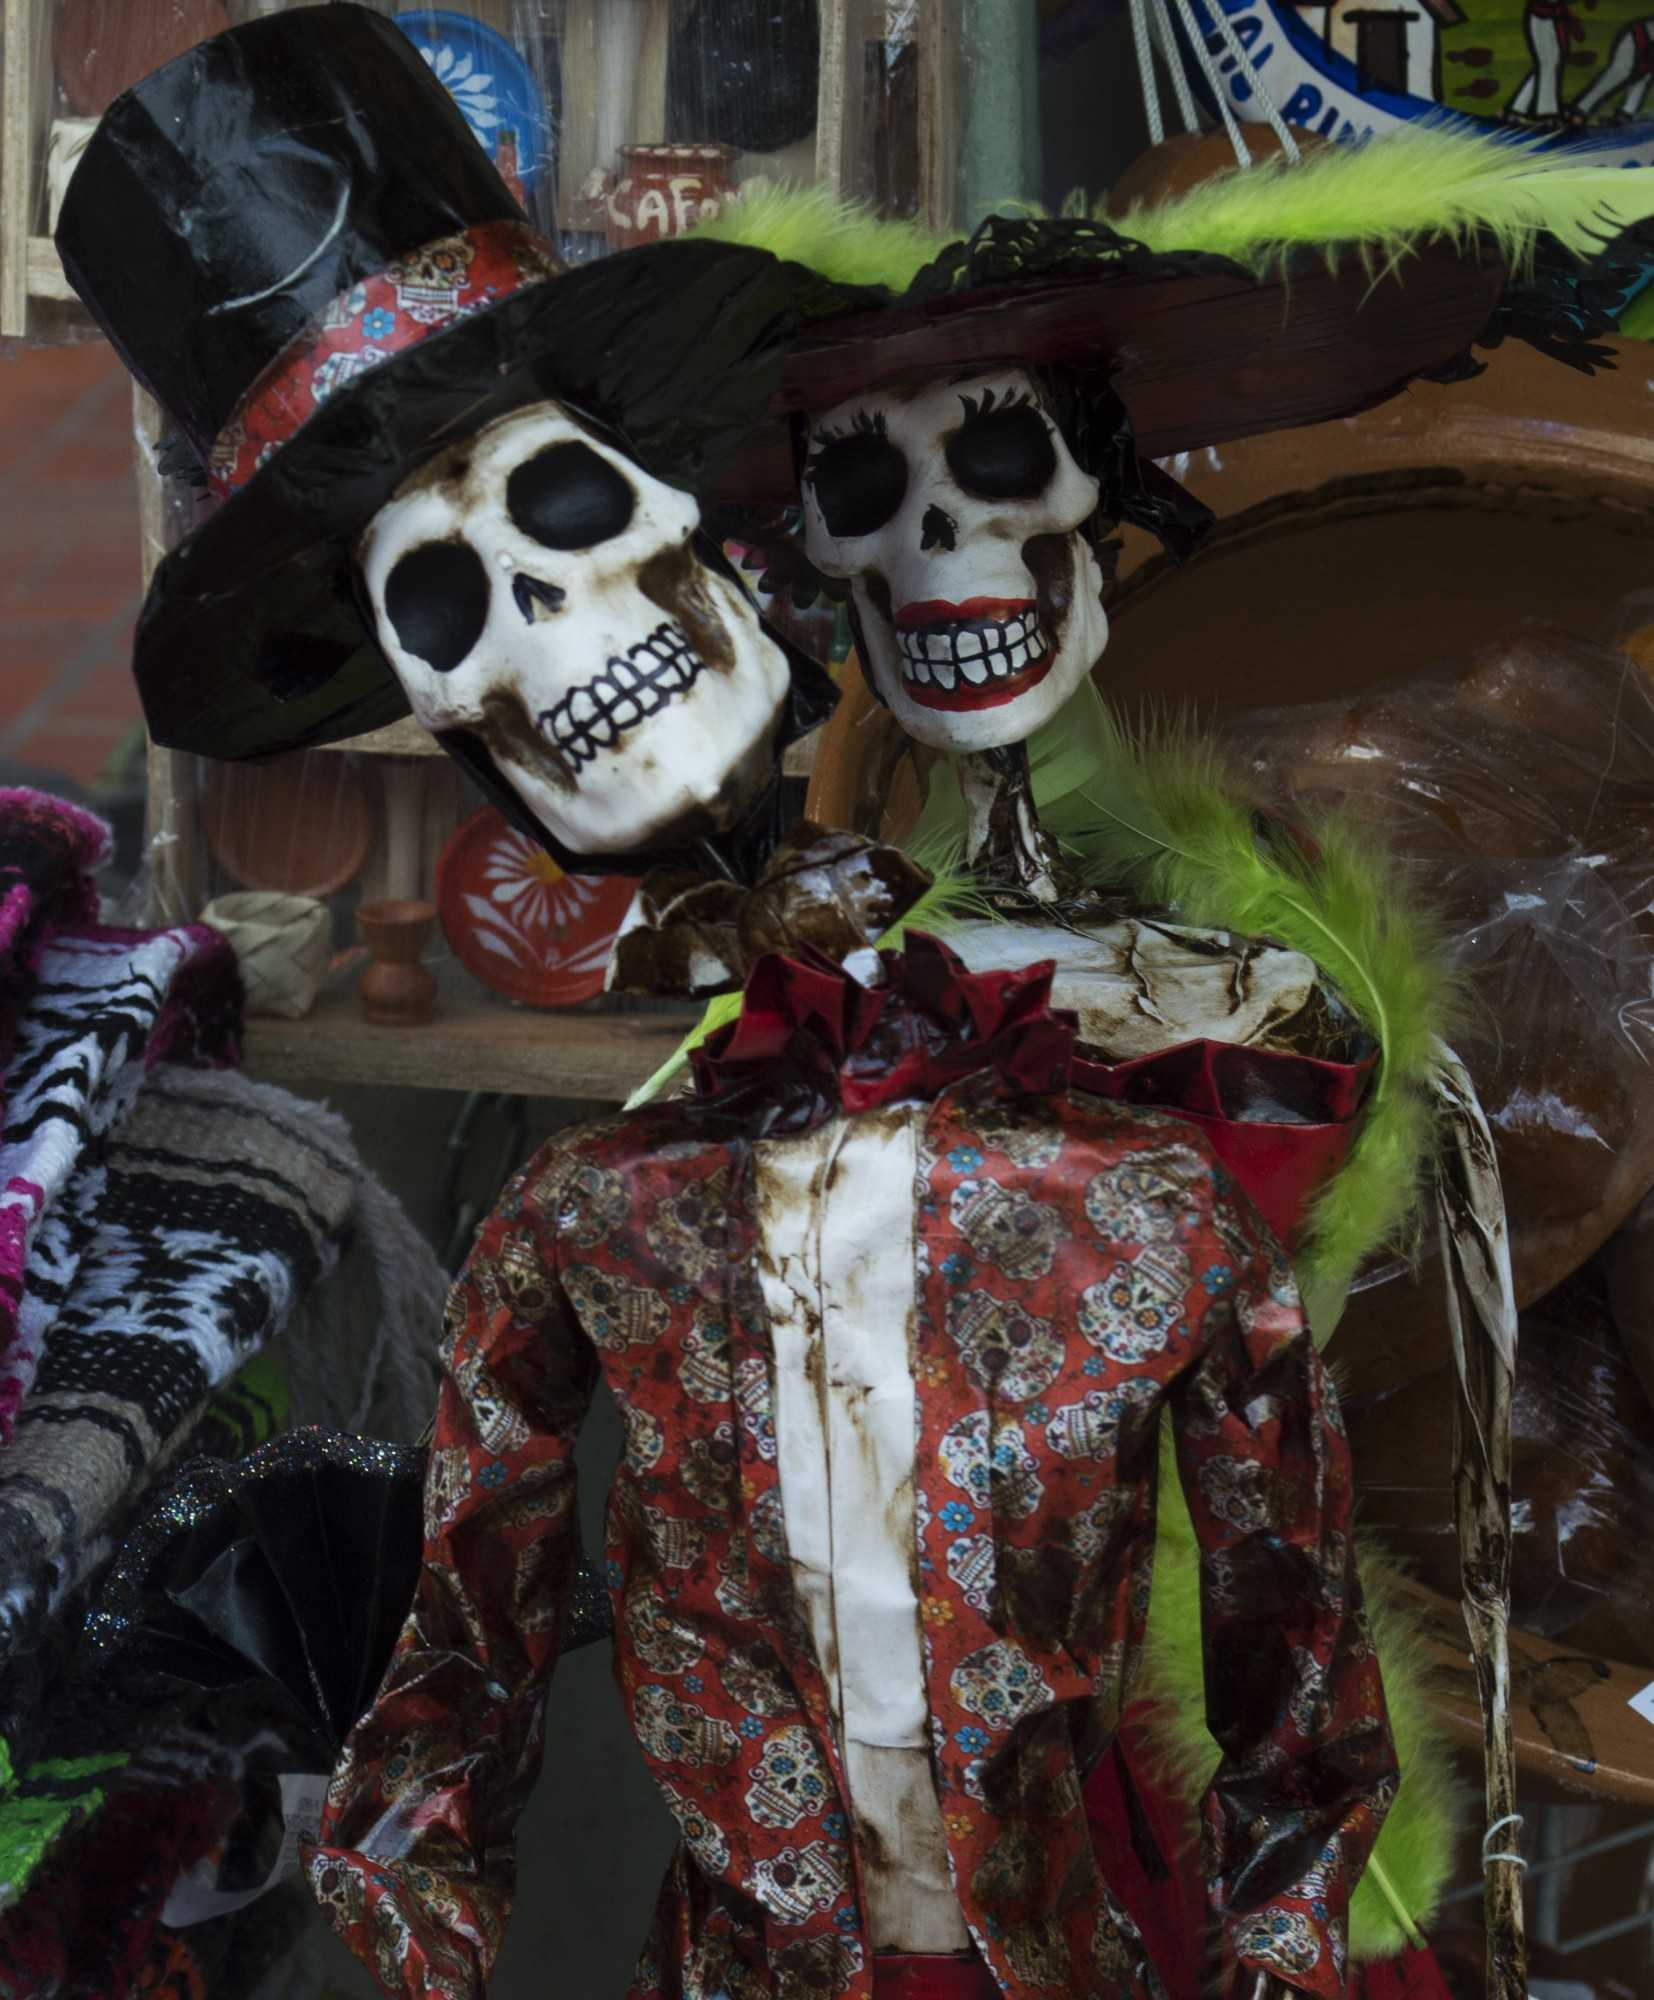 Misconceptions about day of the dead the sundial olvera st sells many items related to day of the dead when it is october leading to the celebration which begins sometime around halloween biocorpaavc Choice Image